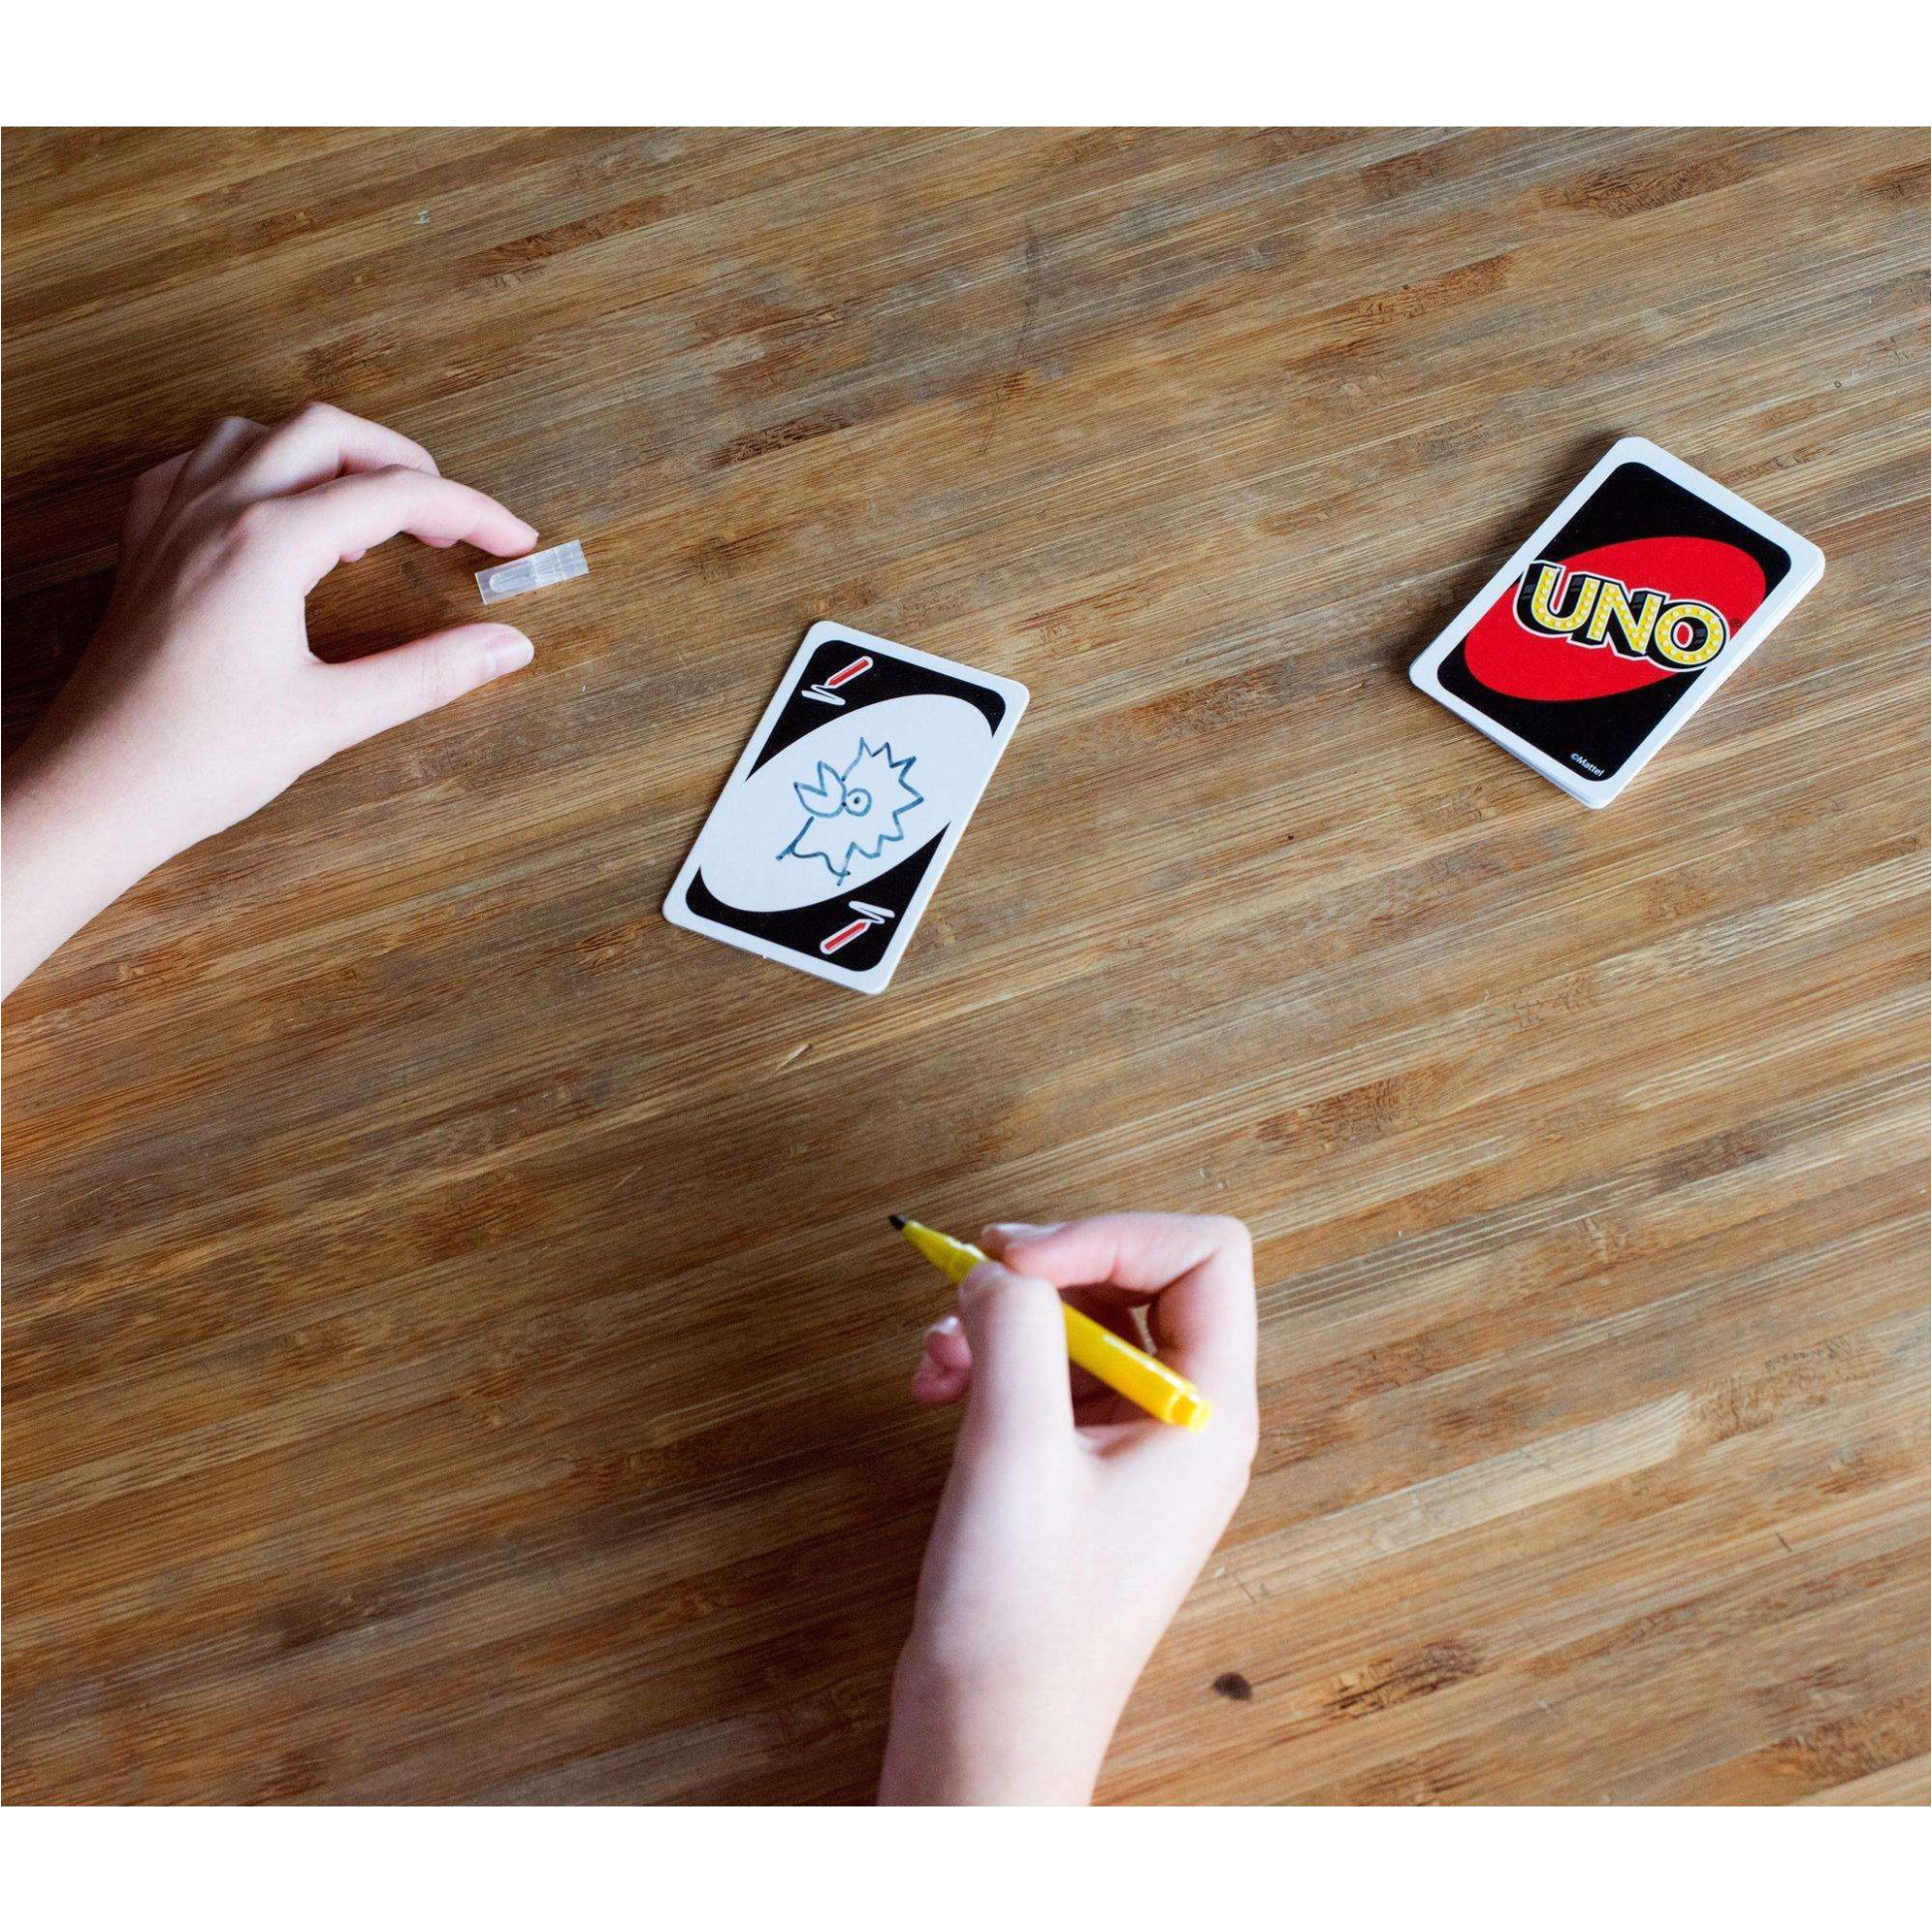 uno wild jackpot card game with wild roller for 15 to 15 players ages 15 years and older jpeg